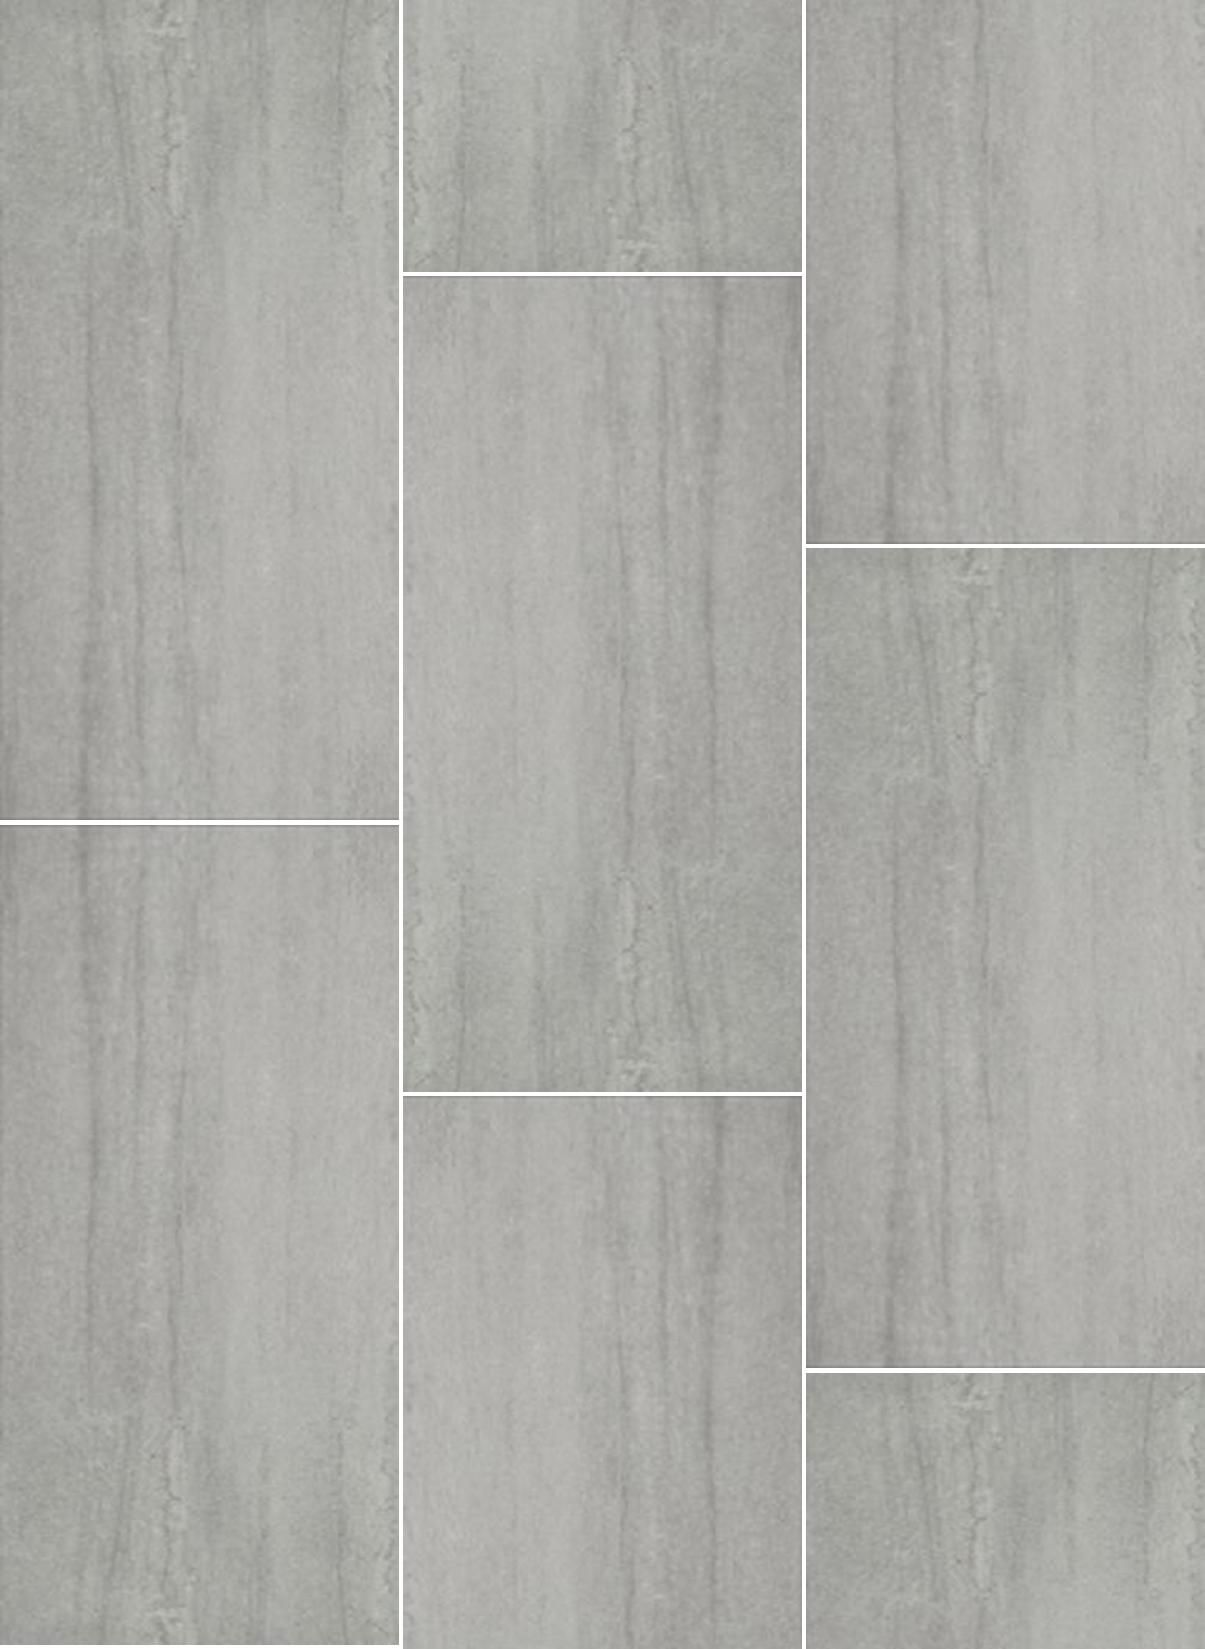 Grey And White Bathroom Floor Tiles Pics For Gt Grey Floor Tiles Texture Kitchen Pinterest